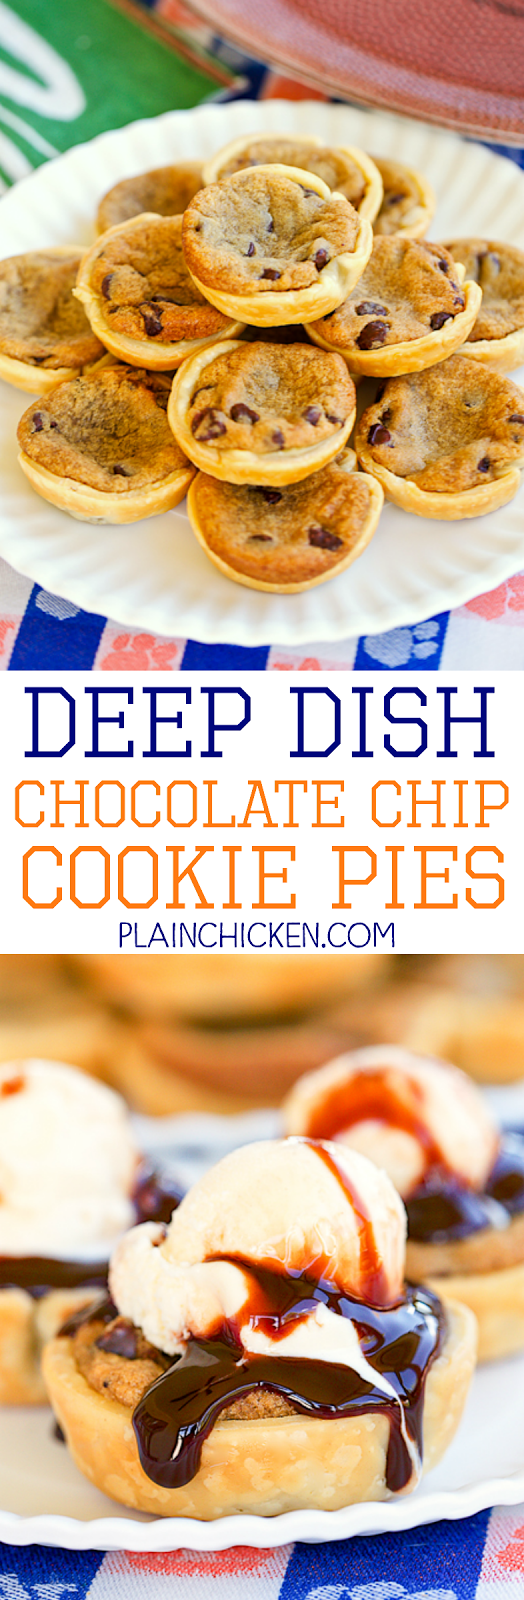 Deep Dish Chocolate Chip Cookie Pies - only 2 ingredients!! SO easy and SOOOO delicious! Top with ice cream and chocolate sauce to put these over the top. Great for parties and cookie swaps!